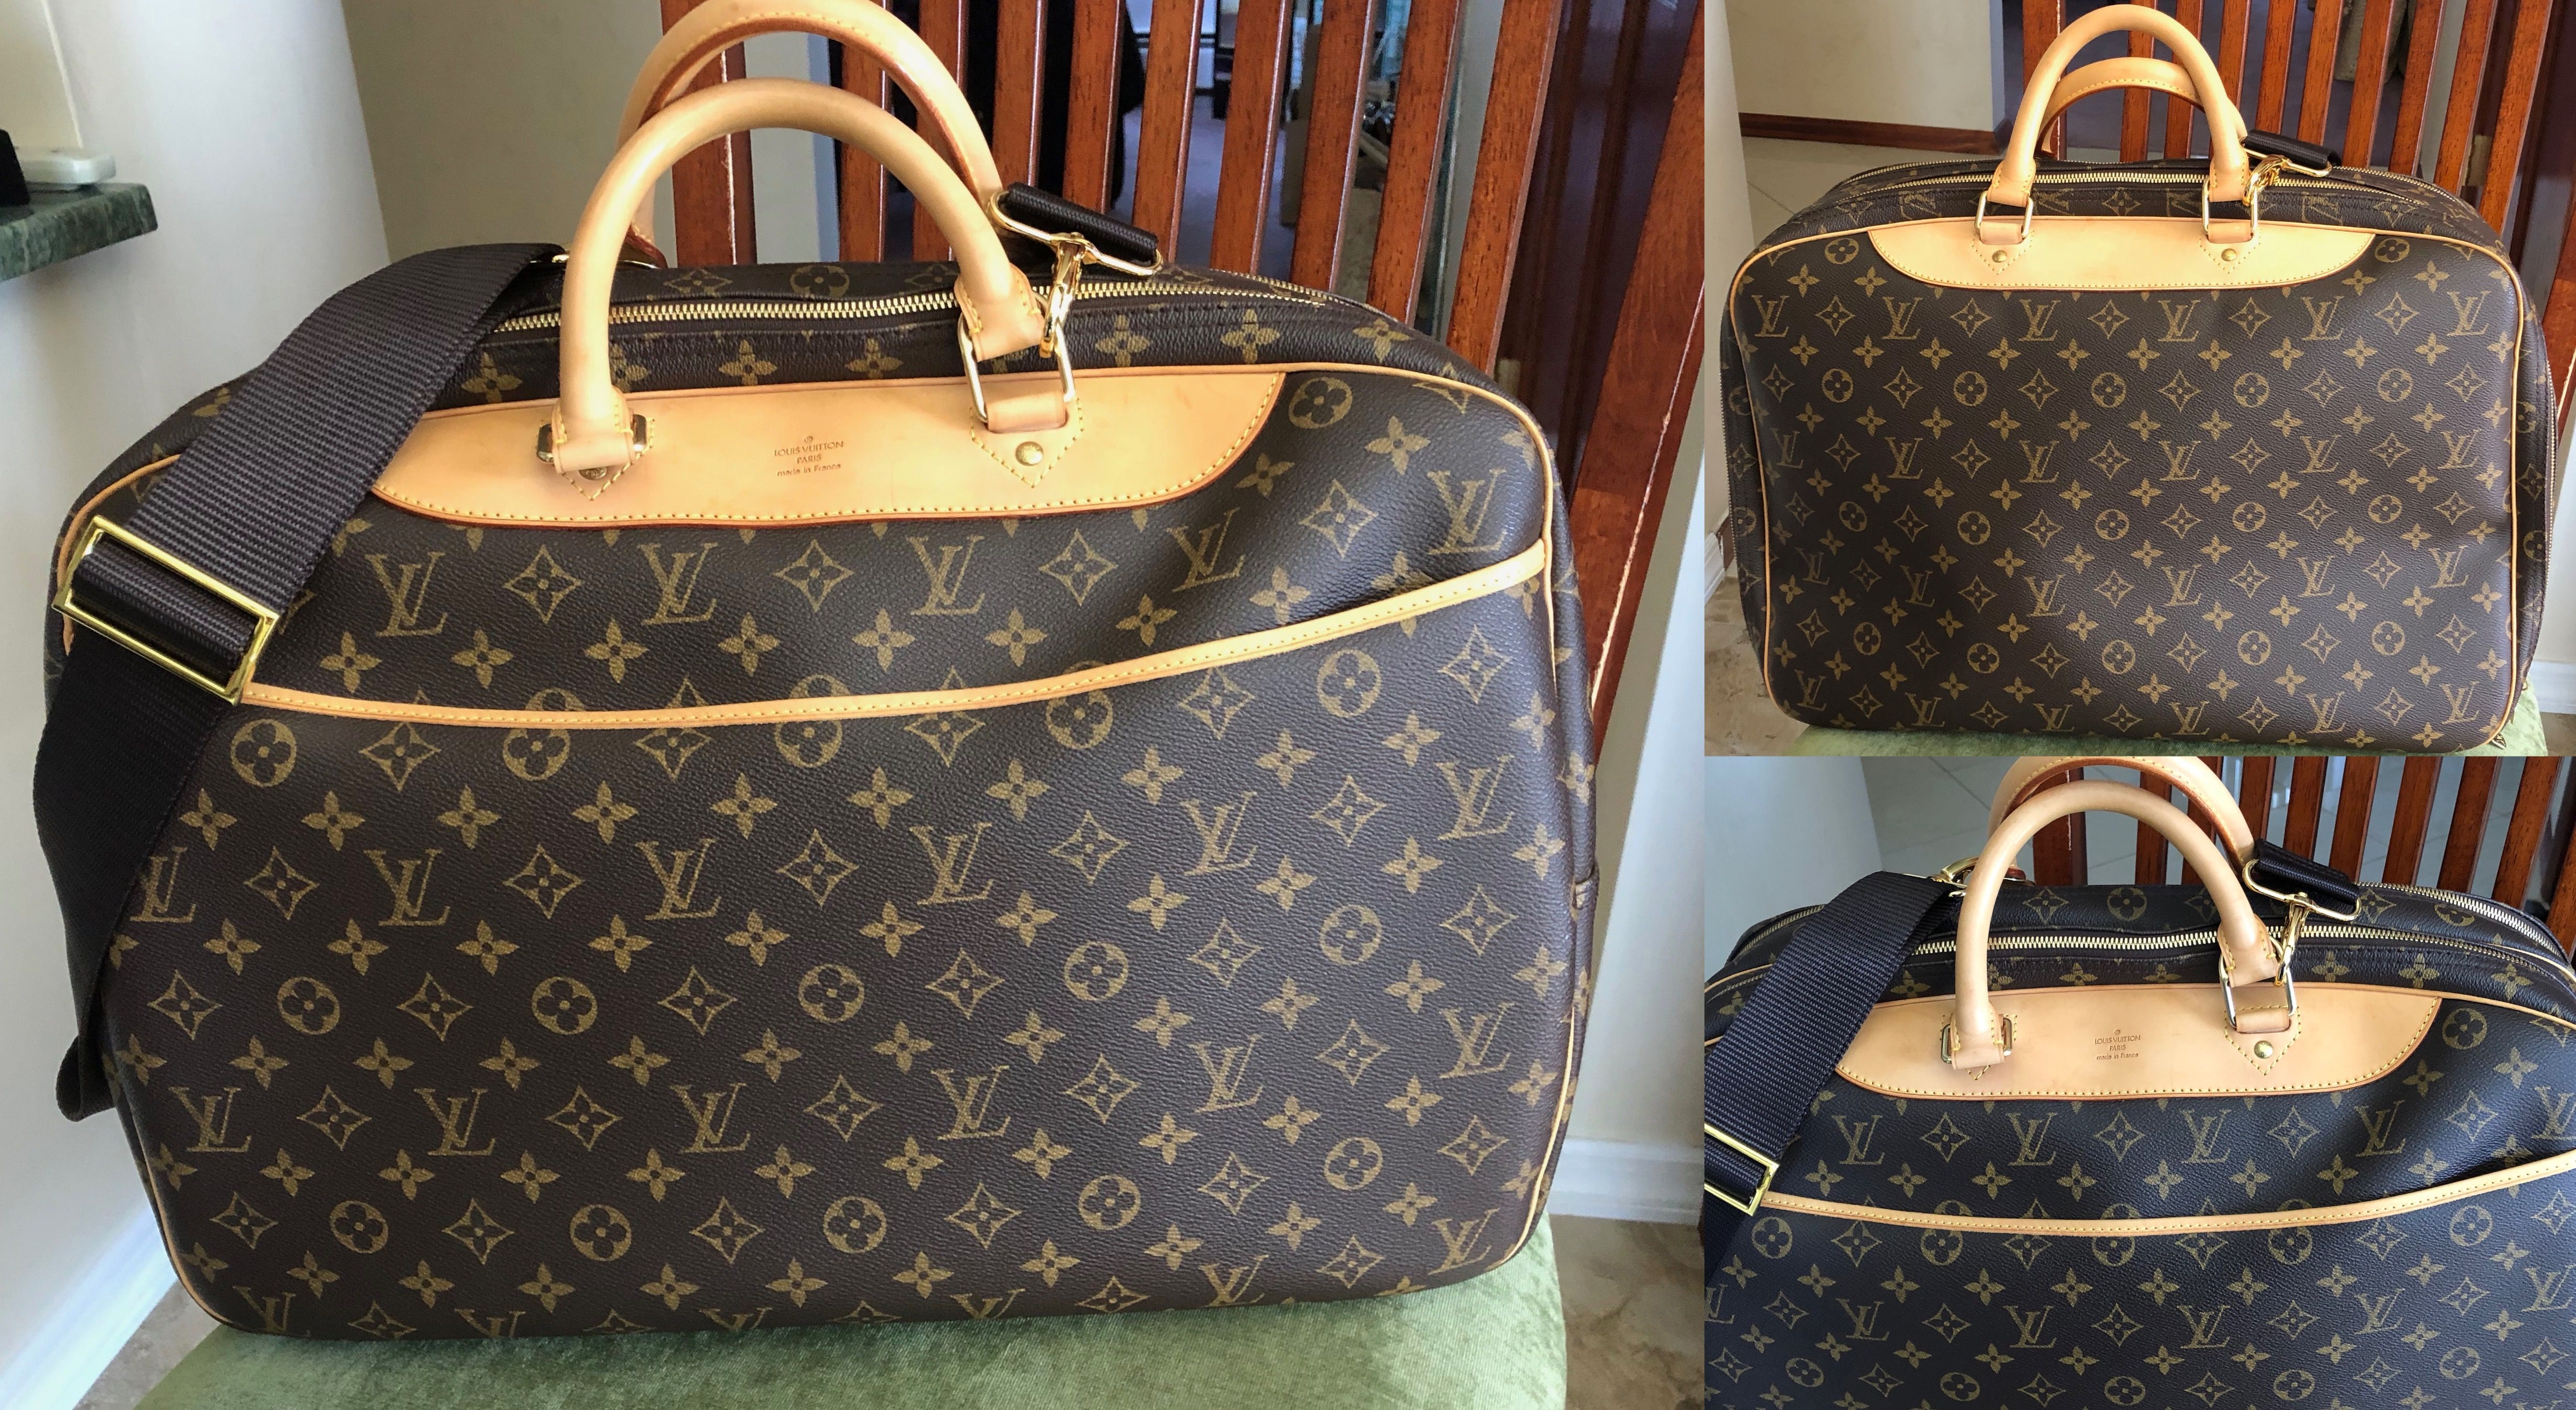 Absolutely Stunning Louis Vuitton Alize 24 Heures Bag Also Called The 24 Hour Bag Bought This Preowned And Handbag Buy Louis Vuitton Louis Vuitton Handbags